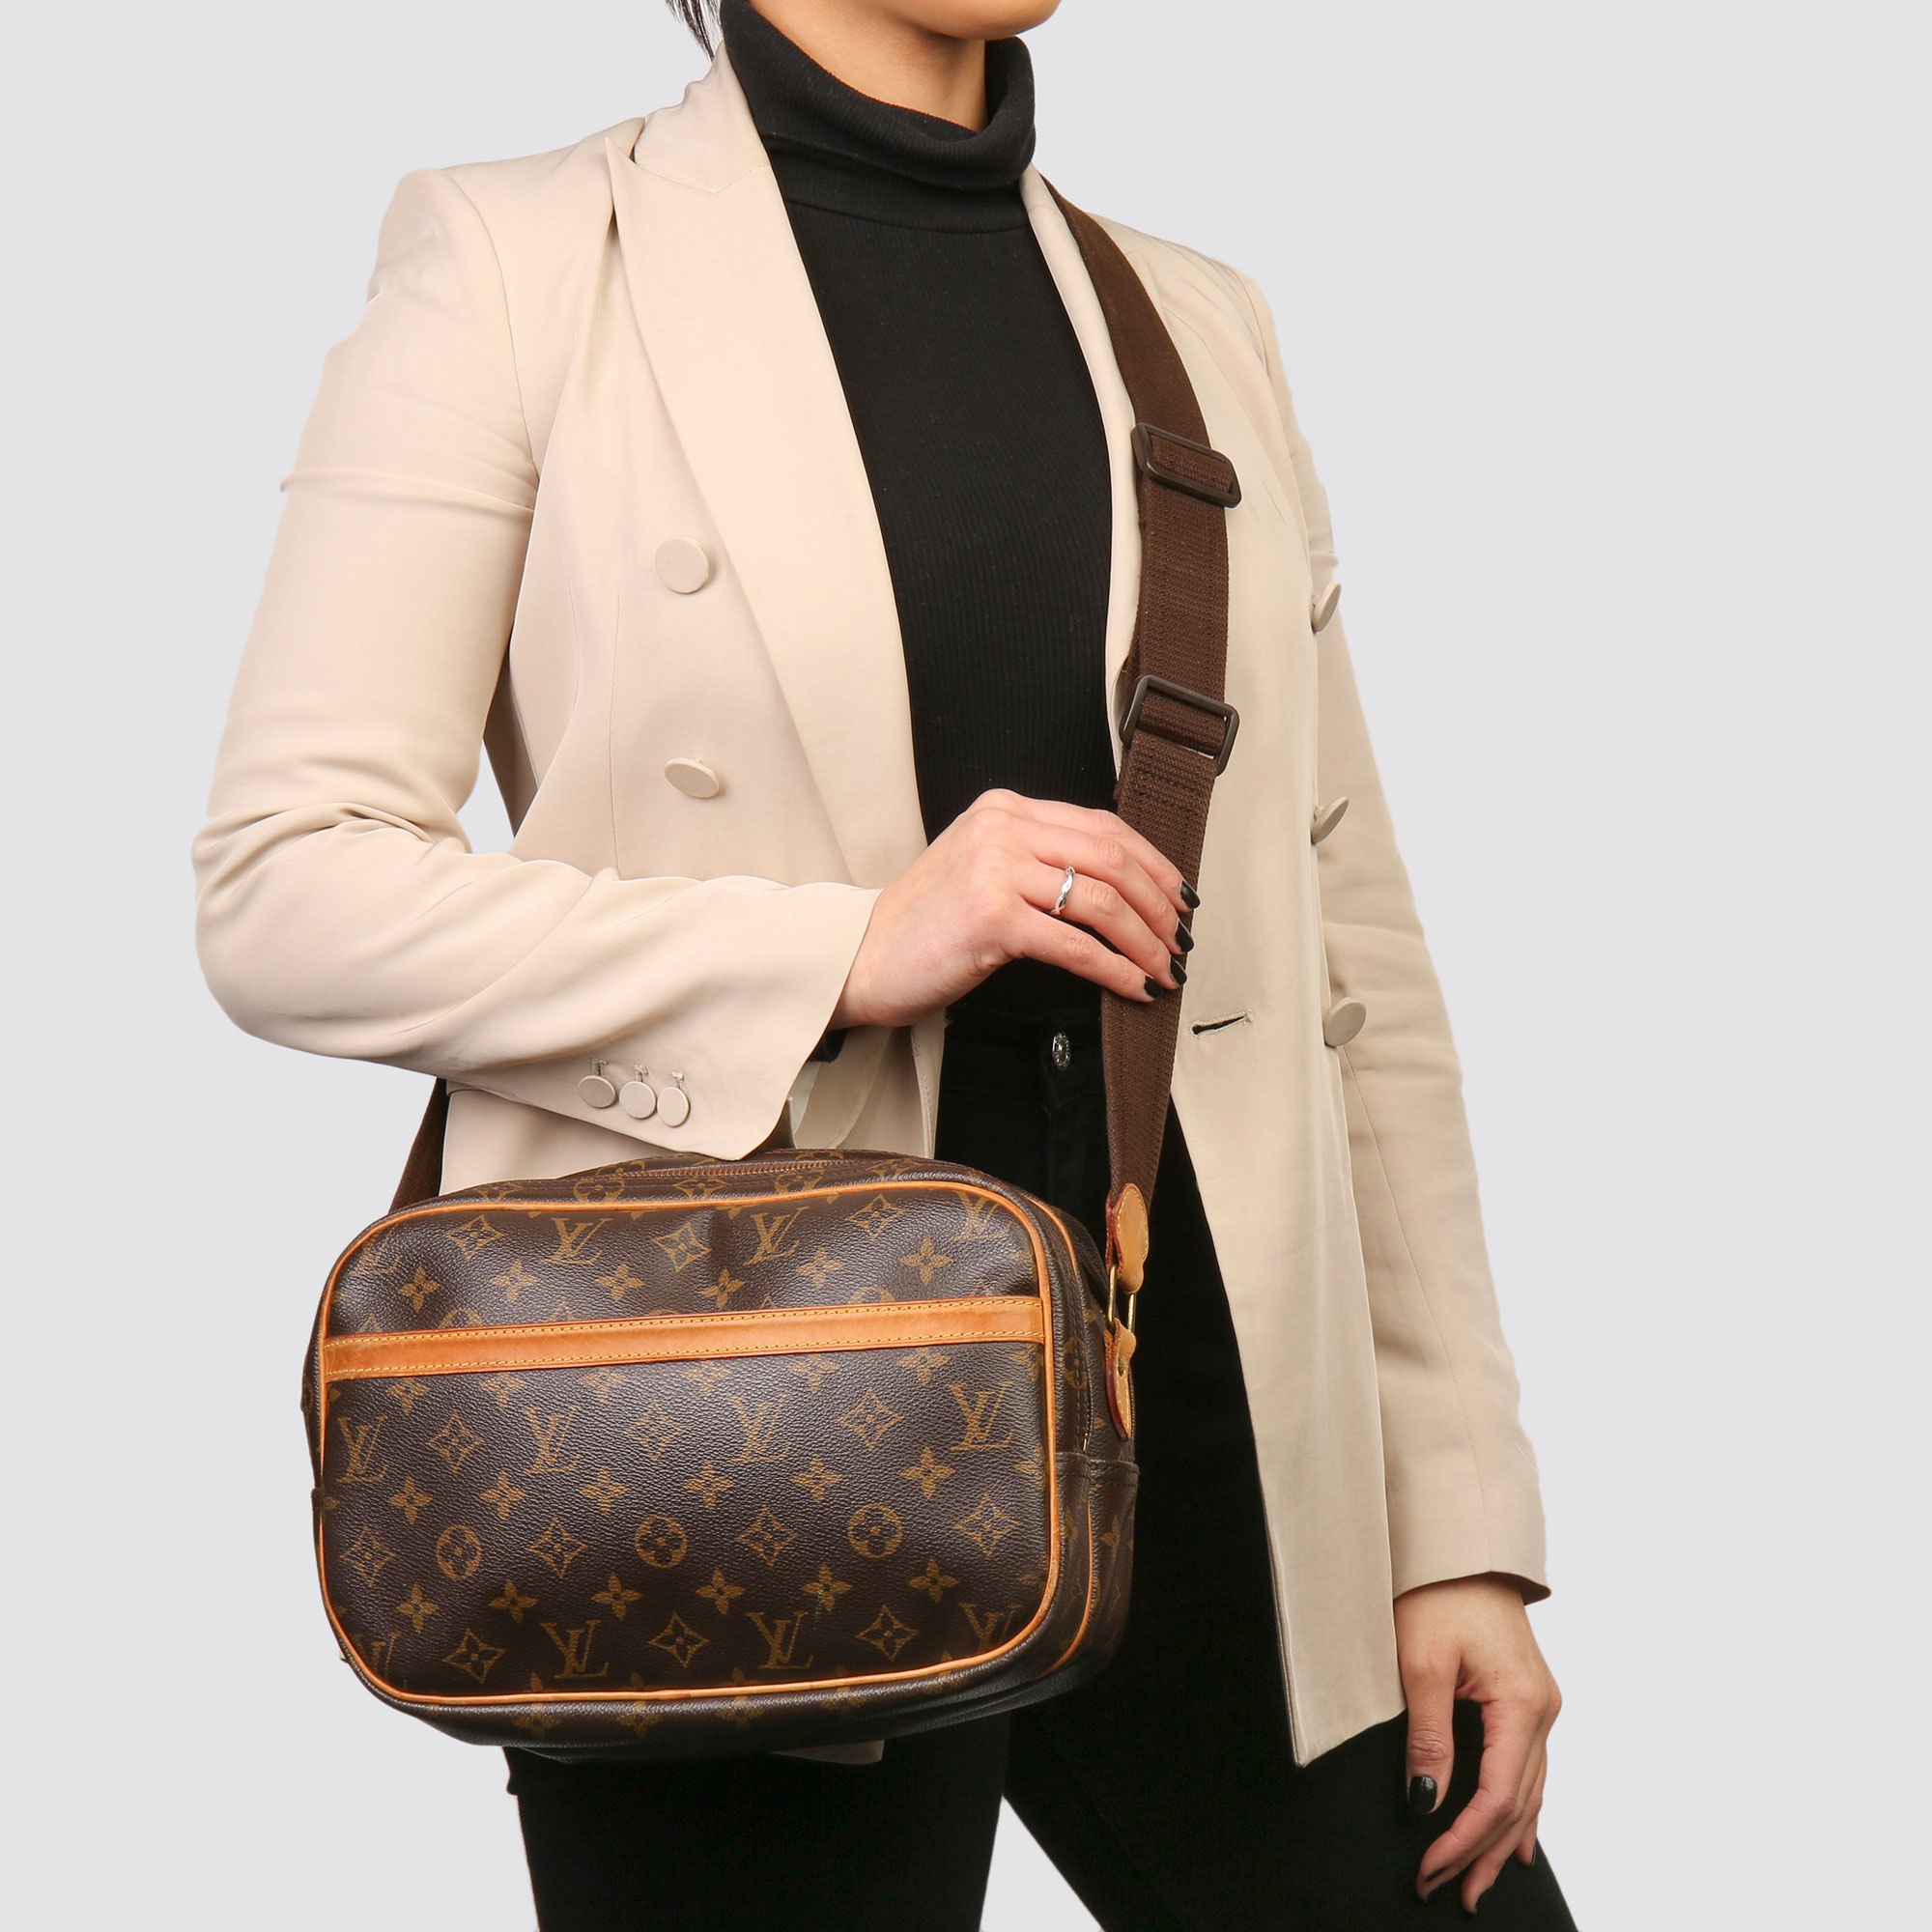 Louis Vuitton Brown Monogram Coated Canvas Vintage Reporter PM - Image 2 of 11